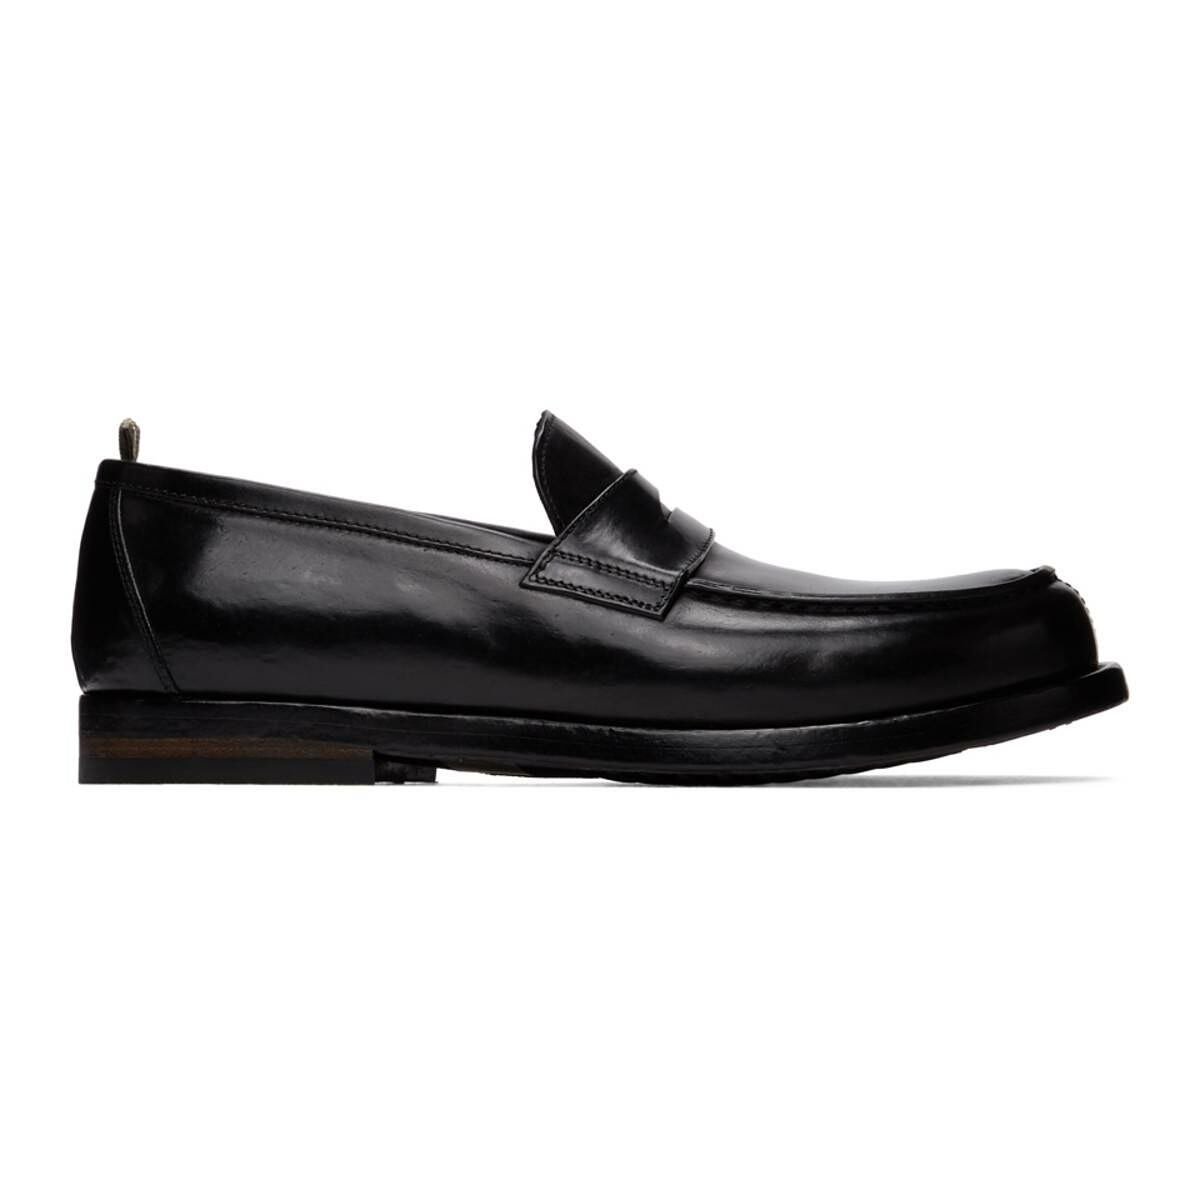 Officine Creative Black Vine 1 Loafers Ssense USA MEN Men SHOES Mens LOAFERS